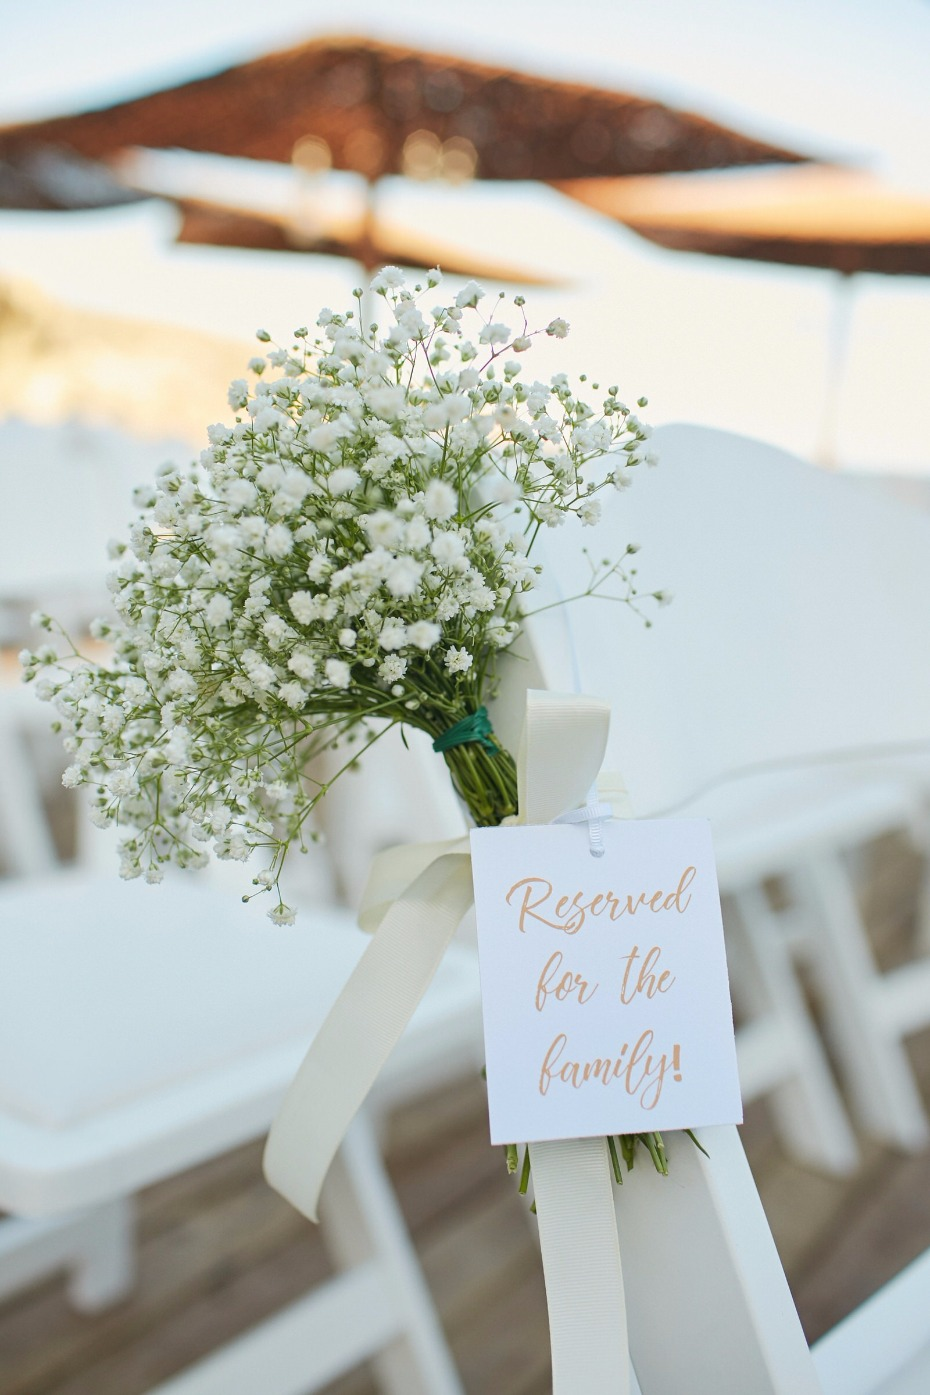 reserved for the family wedding sign